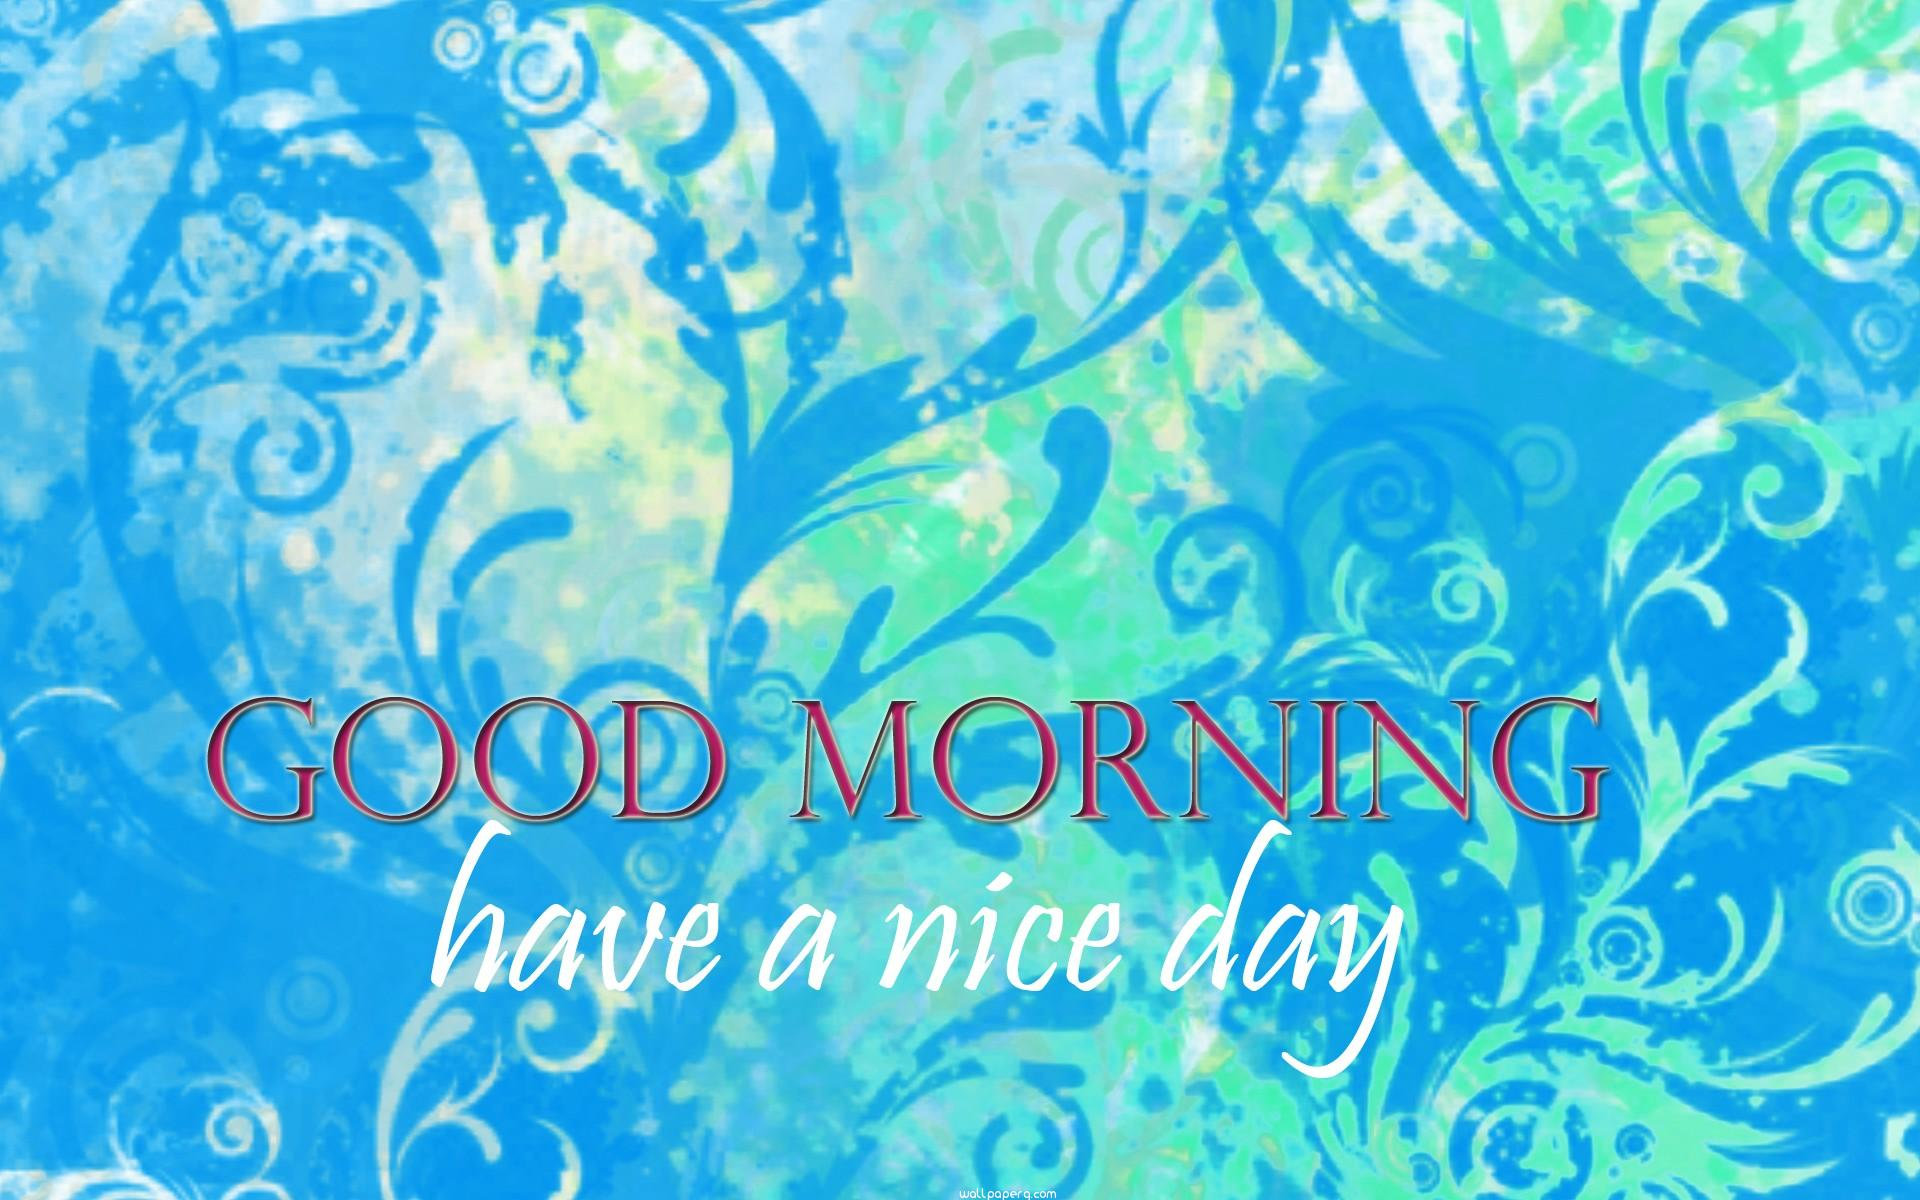 Download Good Morning Have A Nice Day 1 Wallpaper For Mobile Cell Phone